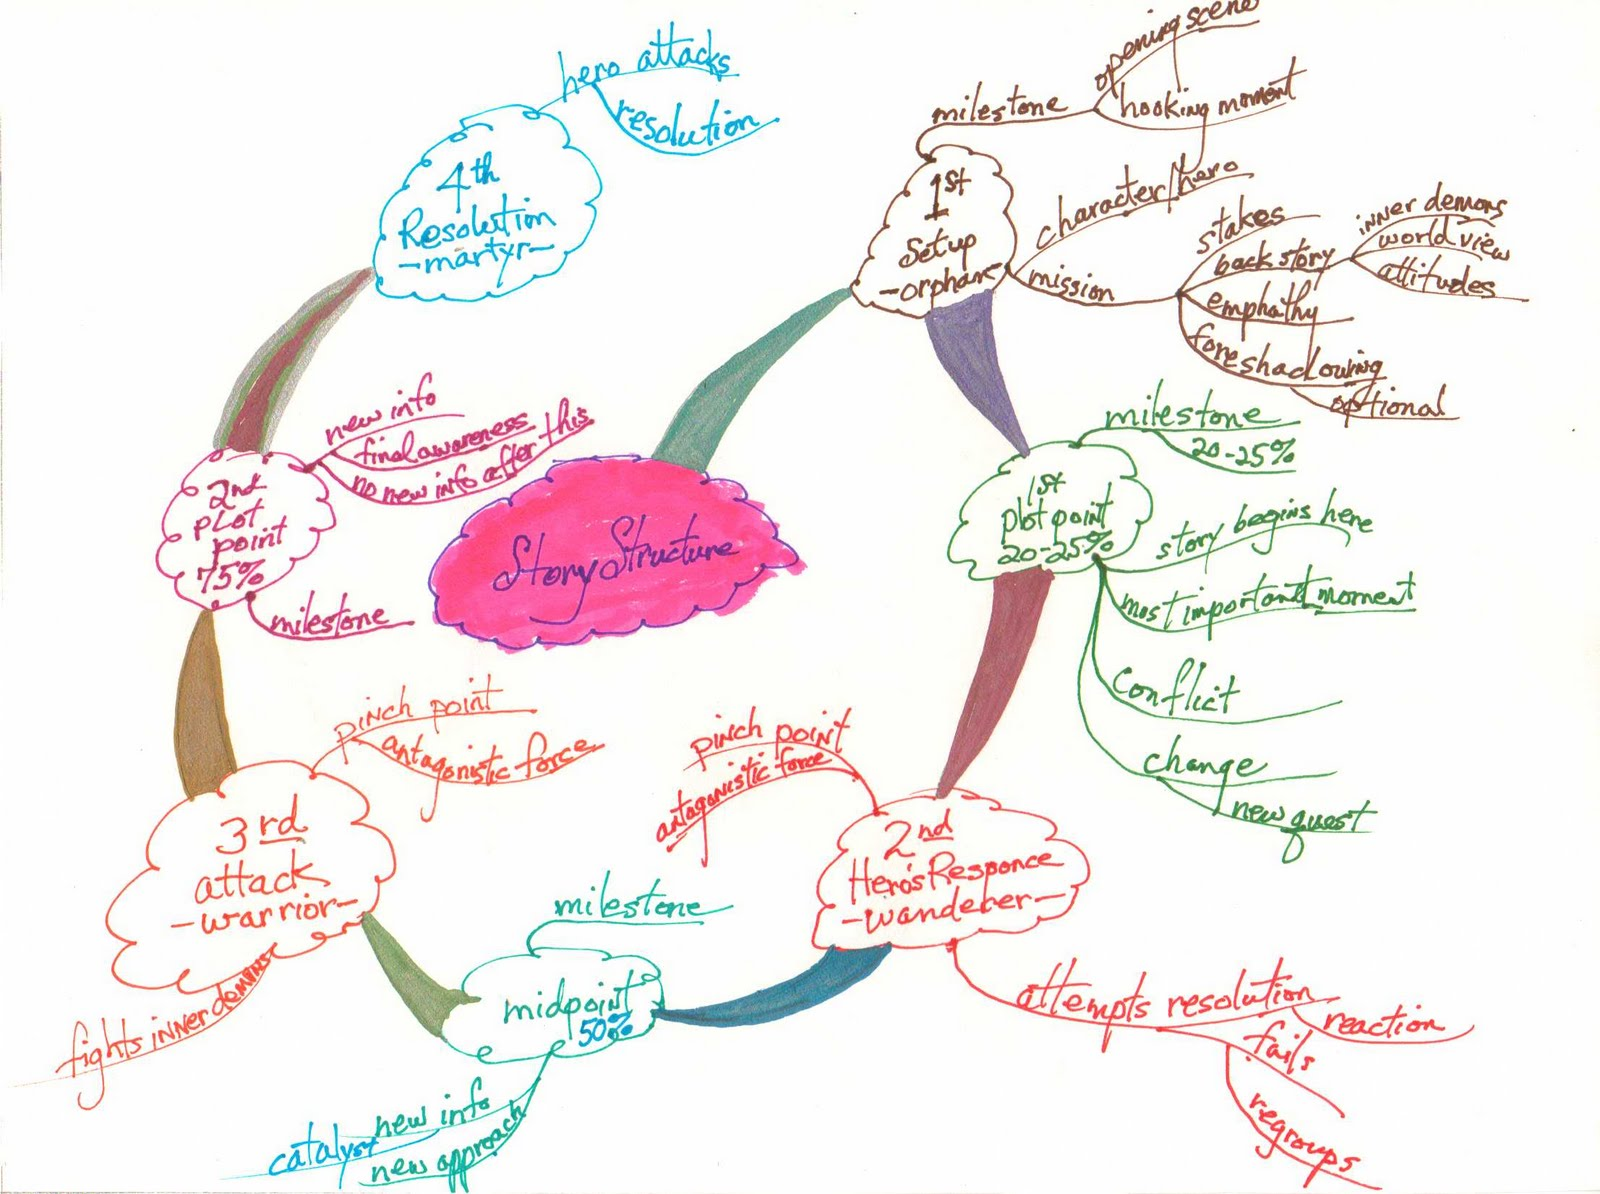 How to write a story mind map